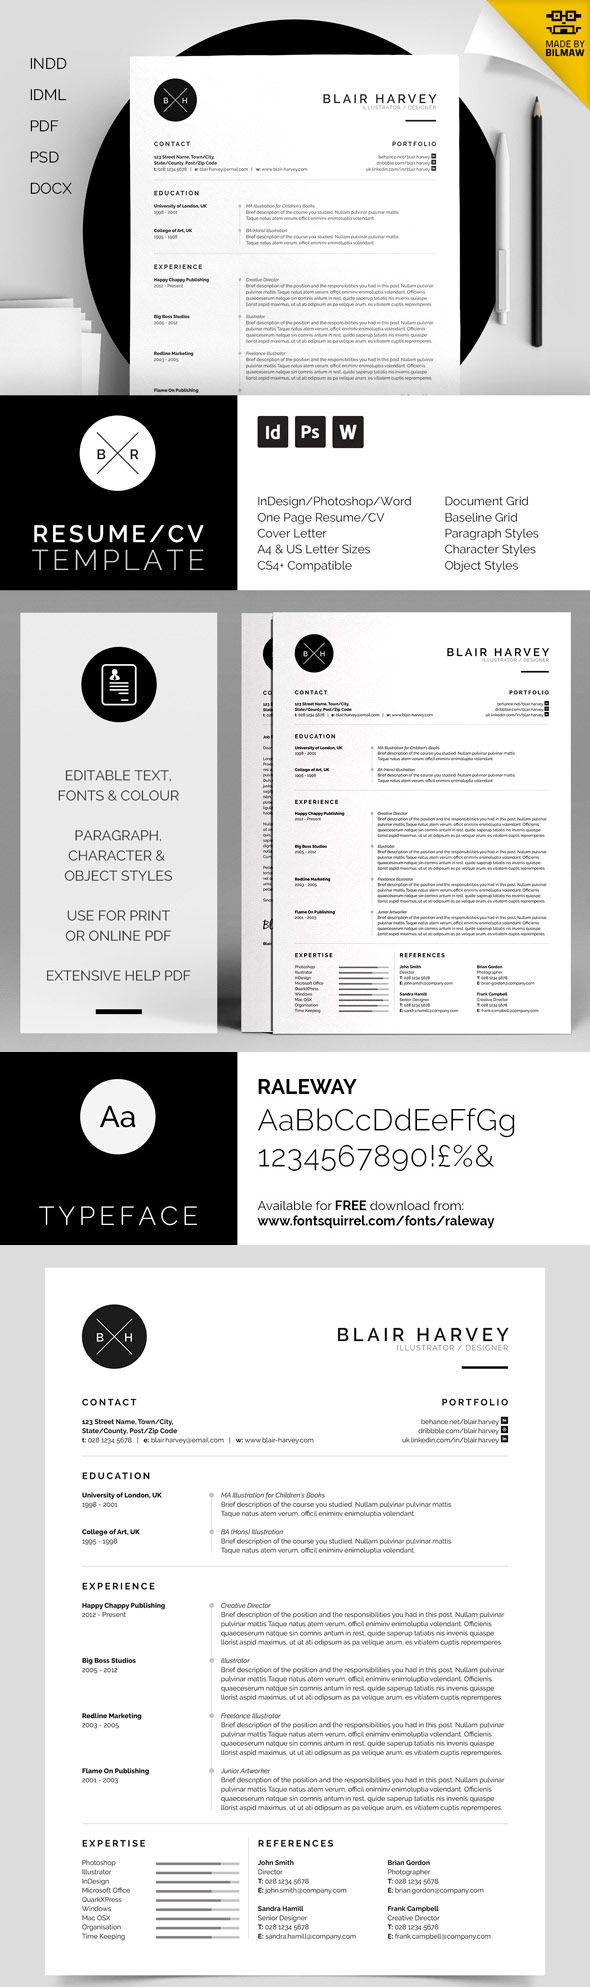 blair branded minimal resume set